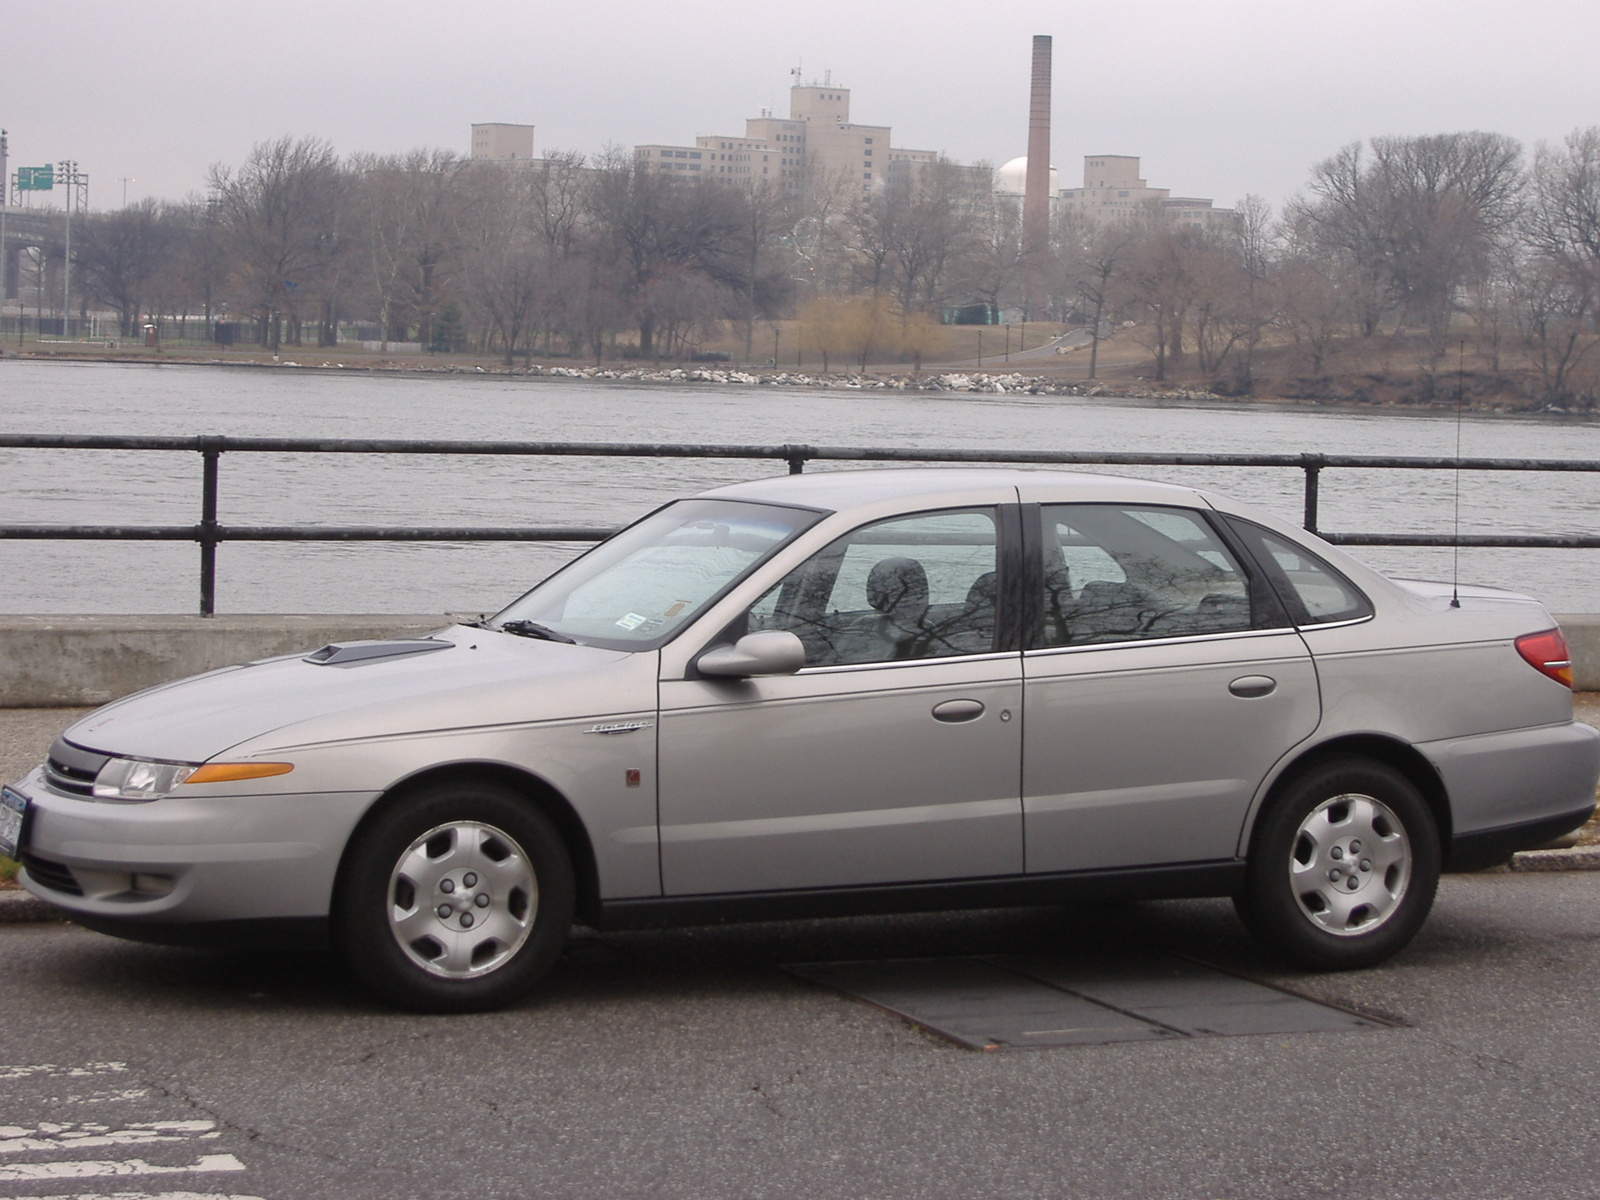 2000 saturn l series information and photos zombiedrive saturn l series 12 vanachro Images